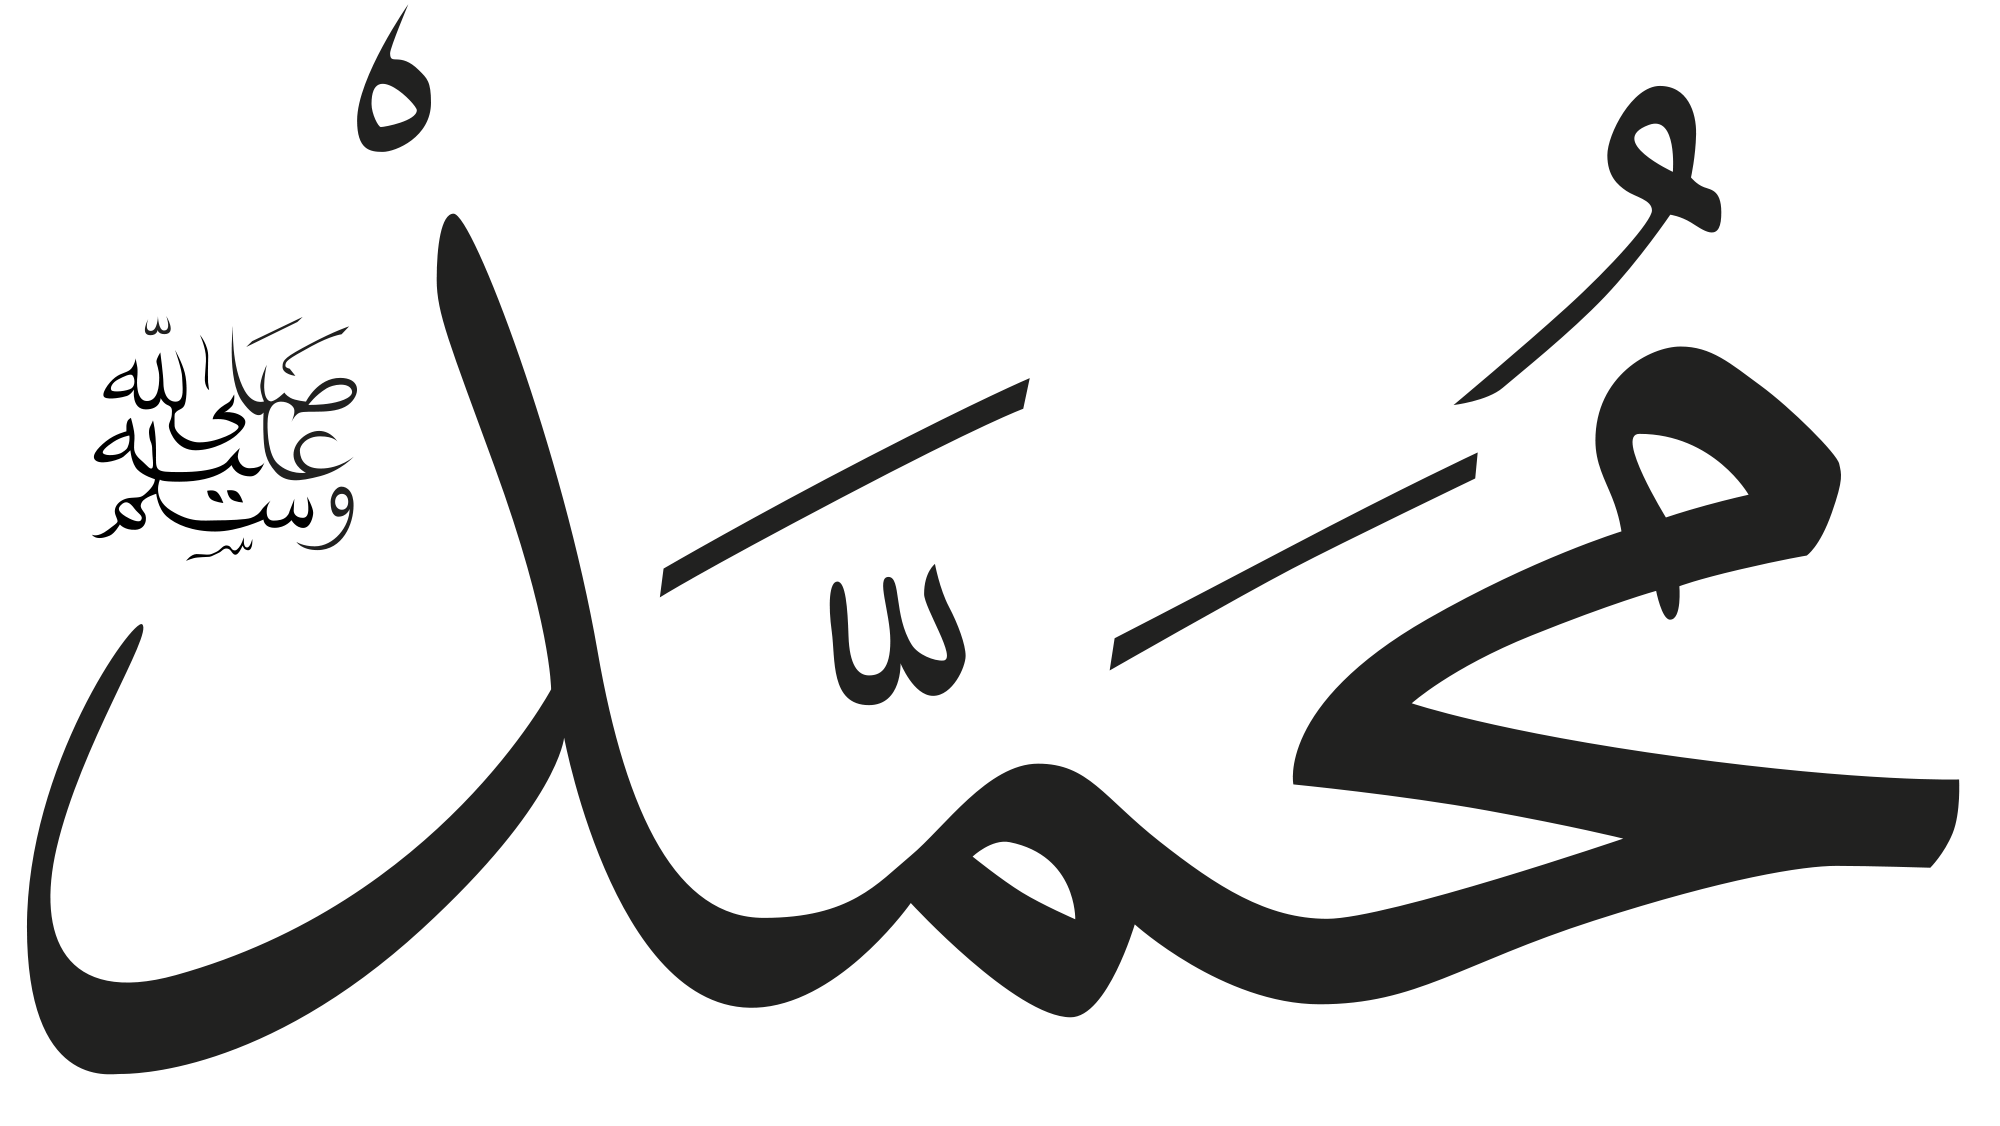 Muhammad Png Transparent Muhammad Png Images Pluspng